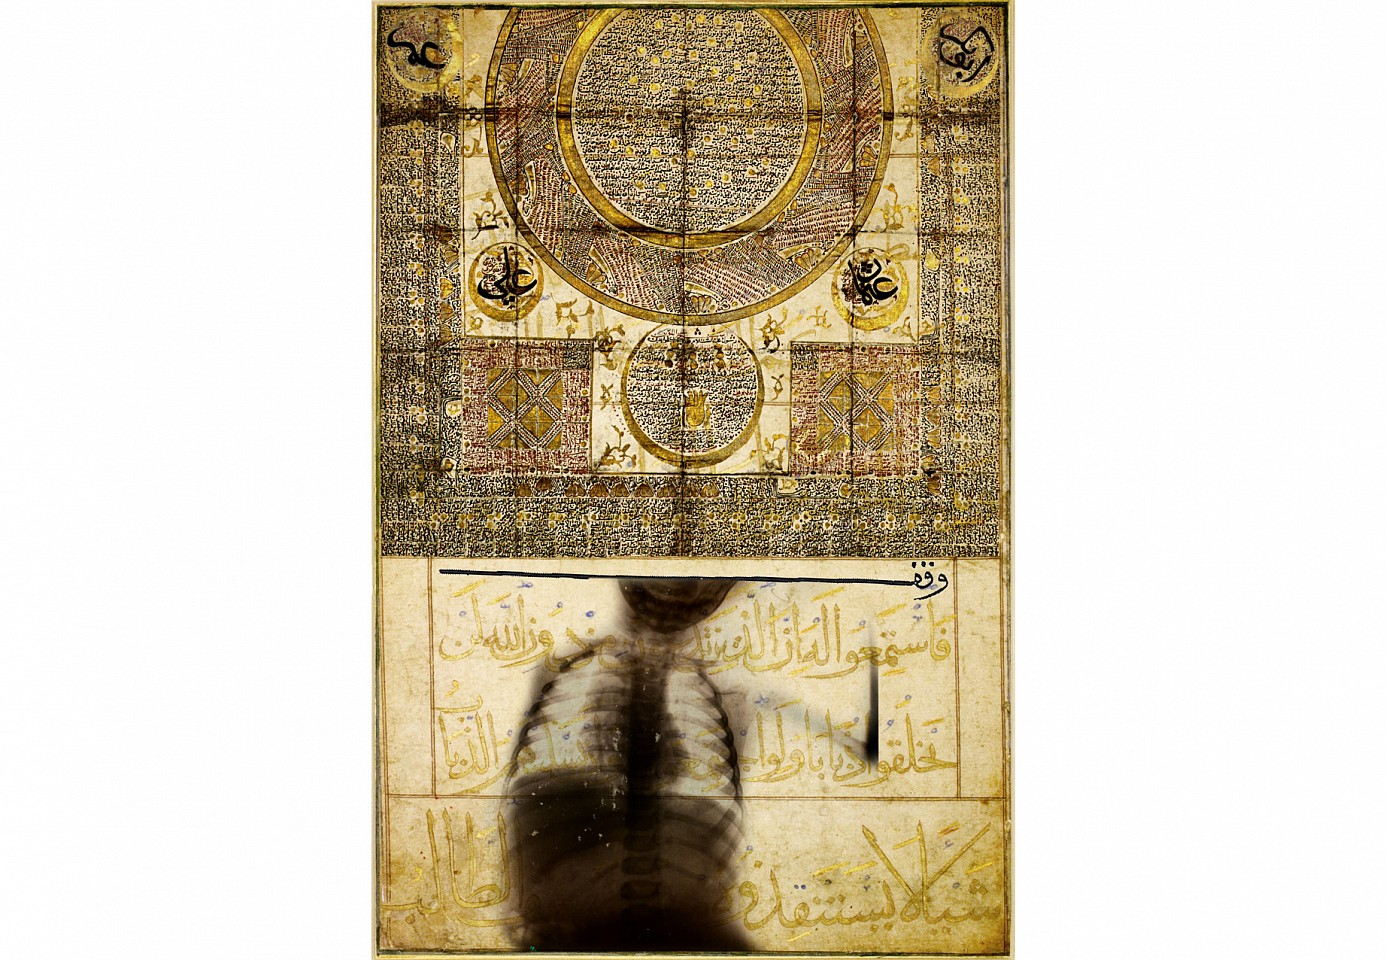 "<p><span class=""viewer-caption-artist"">Ahmed Mater</span></p> <p><span class=""viewer-caption-title""><i>Illumination Talisman III</i></span>, <span class=""viewer-caption-year"">2013</span></p> <p><span class=""viewer-caption-media"">Gold leaf, tea, pomegranate, Dupont Chinese ink and offset X-ray film print on archival Arches paper</span></p> <p><span class=""viewer-caption-dimensions"">155 x 110 cm (61 x 43 1/4 in.)</span></p> <p><span class=""viewer-caption-description"">From Illumination series</span></p> <p><span class=""viewer-caption-inventory"">AHM0085</span></p> <p><span class=""viewer-caption-aux""></span></p>"